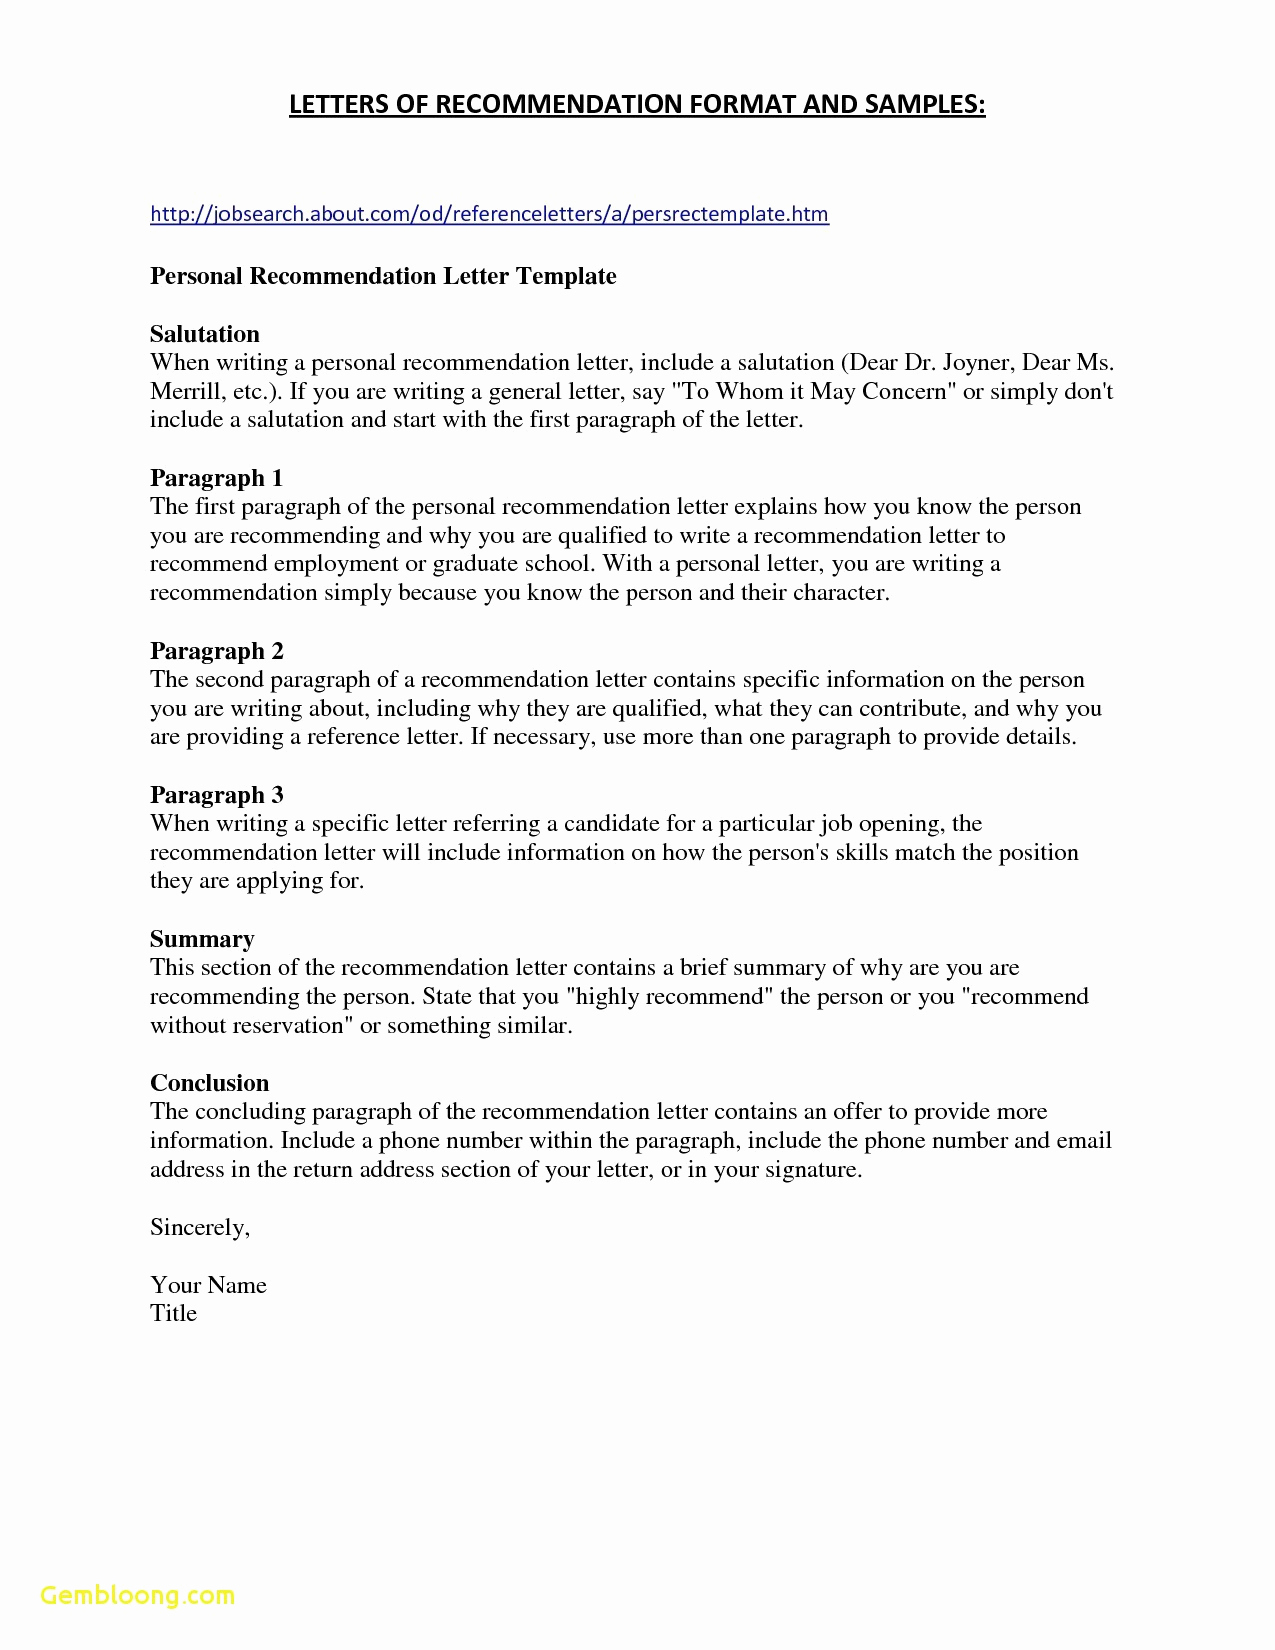 Petition Letter Template - Example College Application Letter Luxury Petition Letter for